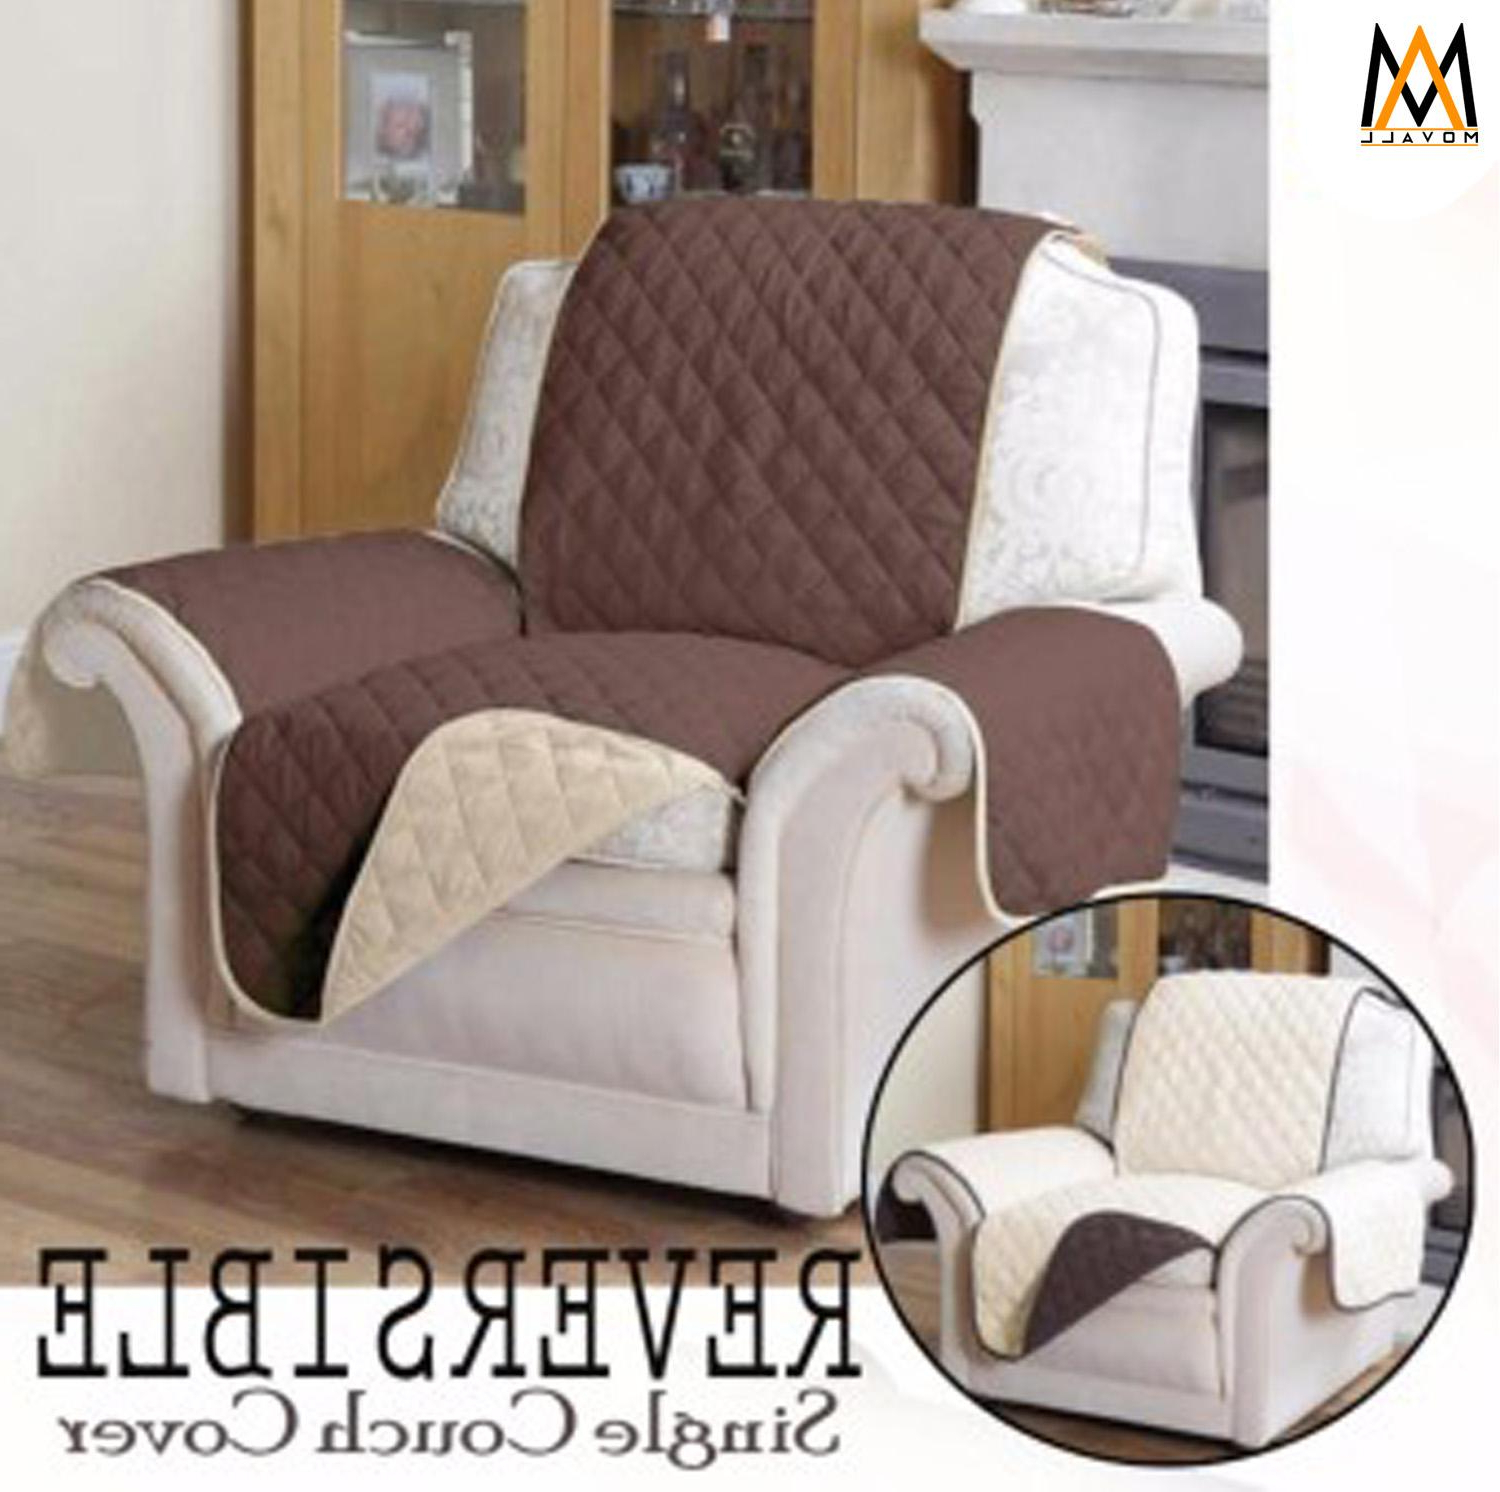 Popular Sofa And Chair Slipcovers With Regard To Slipcovers For Sale – Slipcover Prices, Brands & Review In (View 9 of 20)